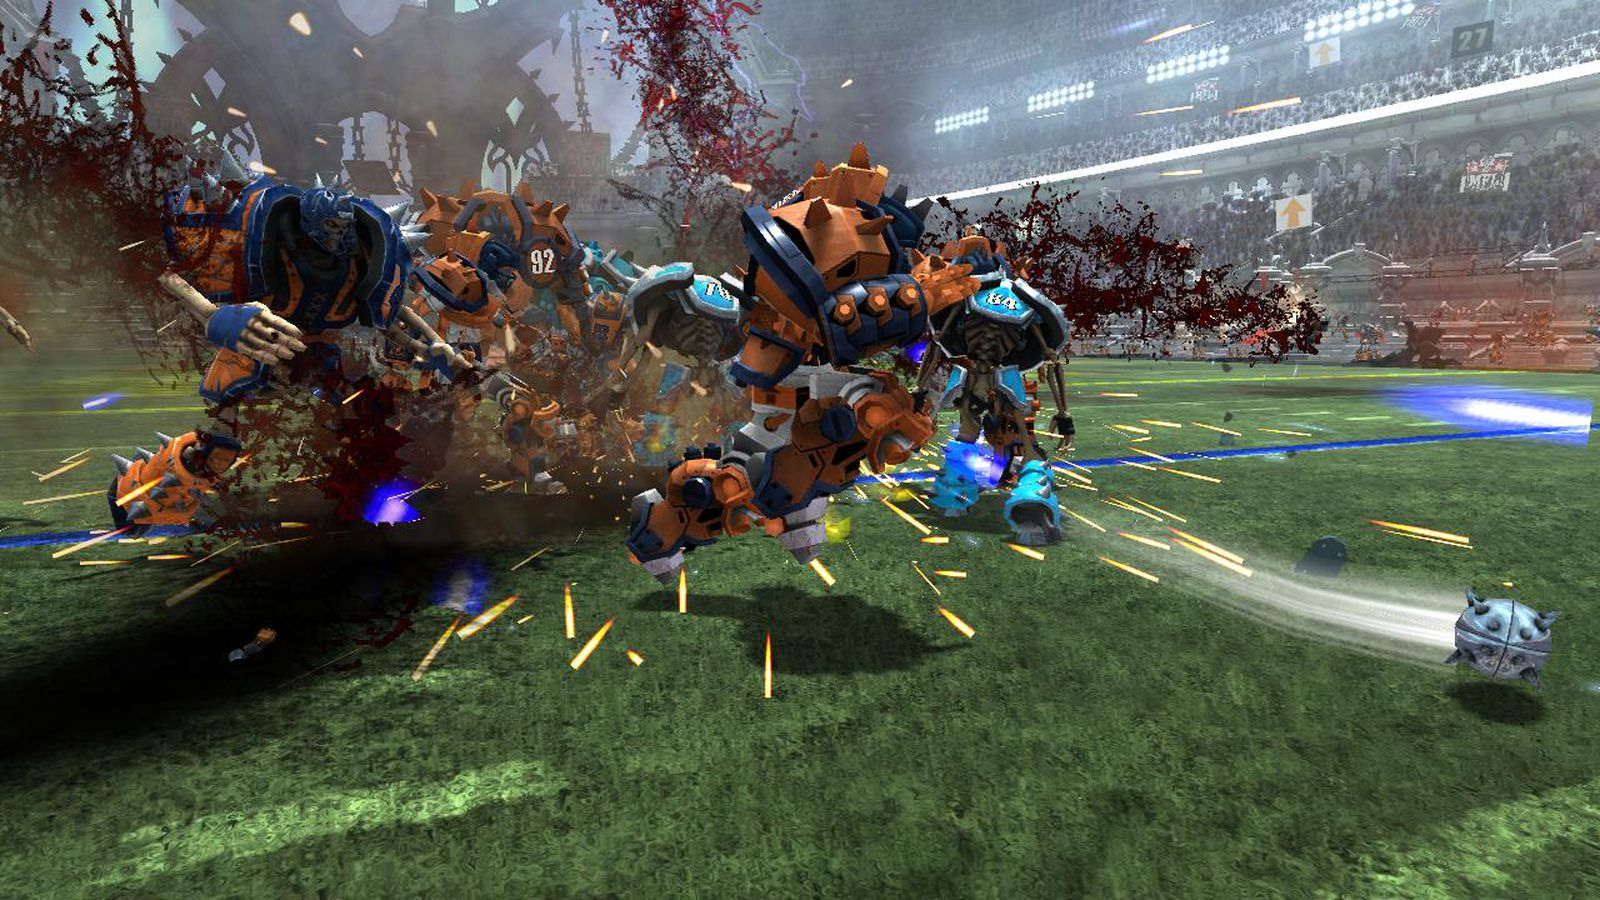 mutant football league predicts the championship game